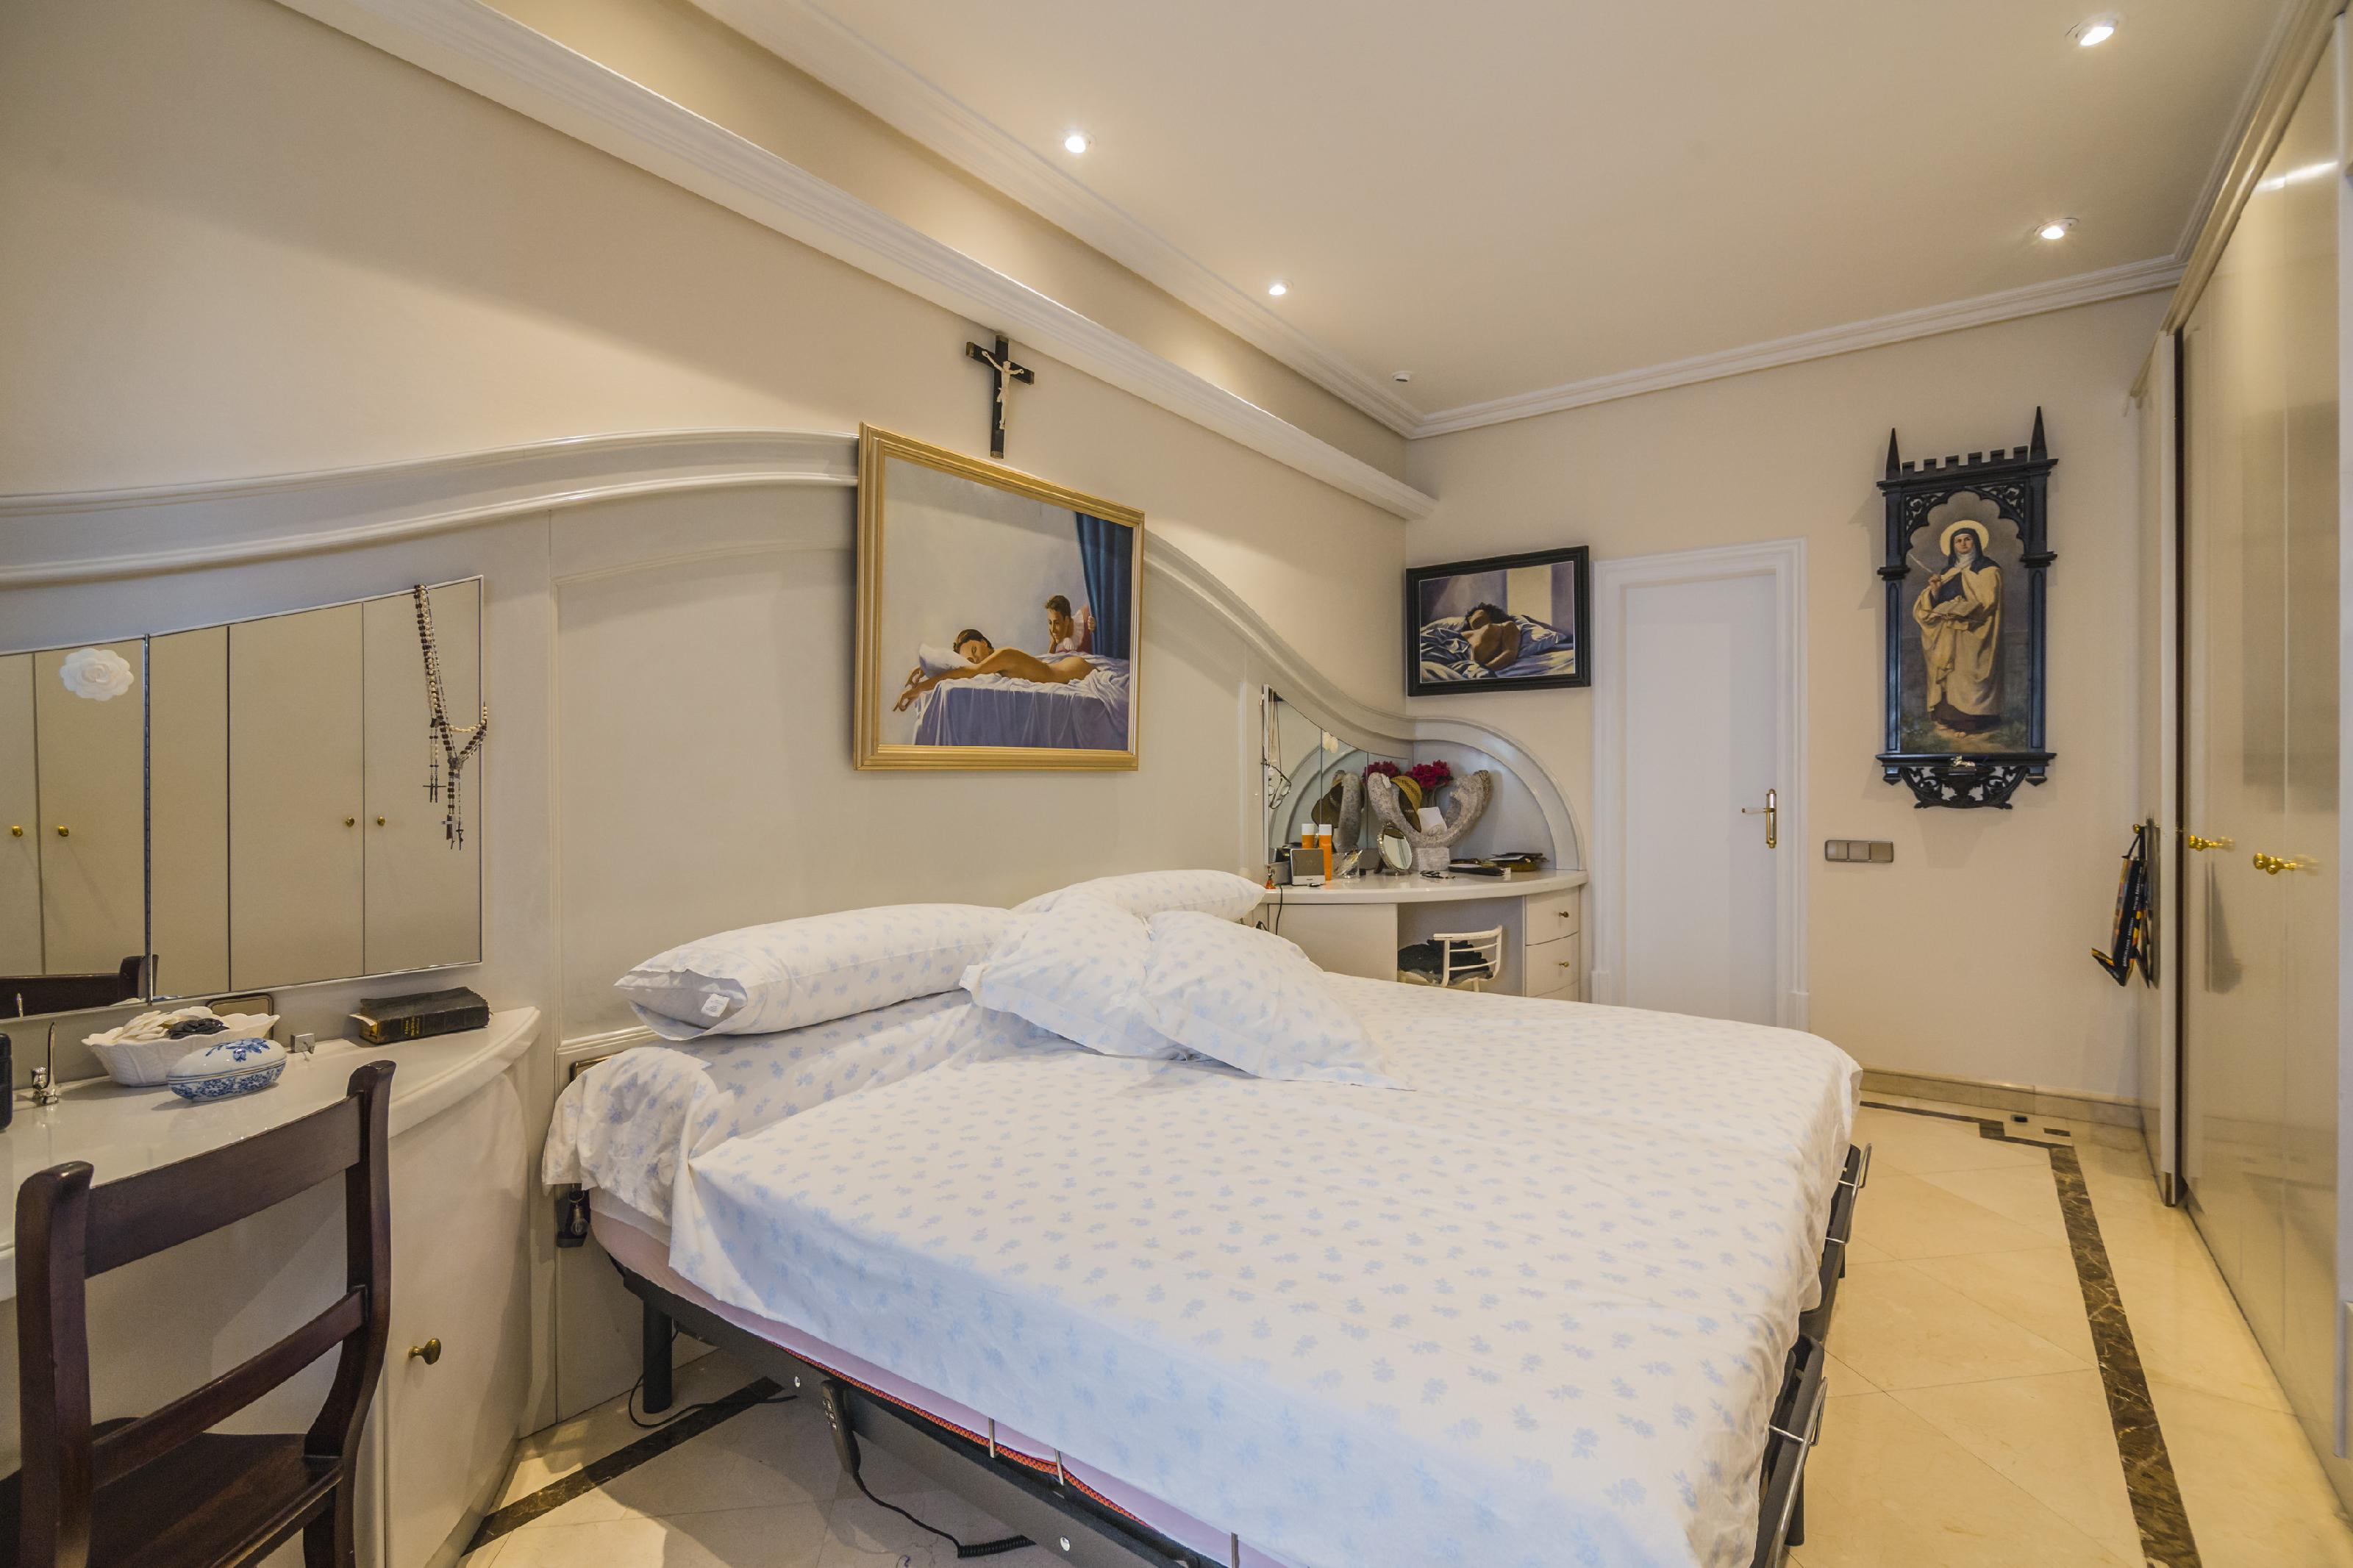 87800 Apartment for sale in Eixample, Dreta Eixample 27